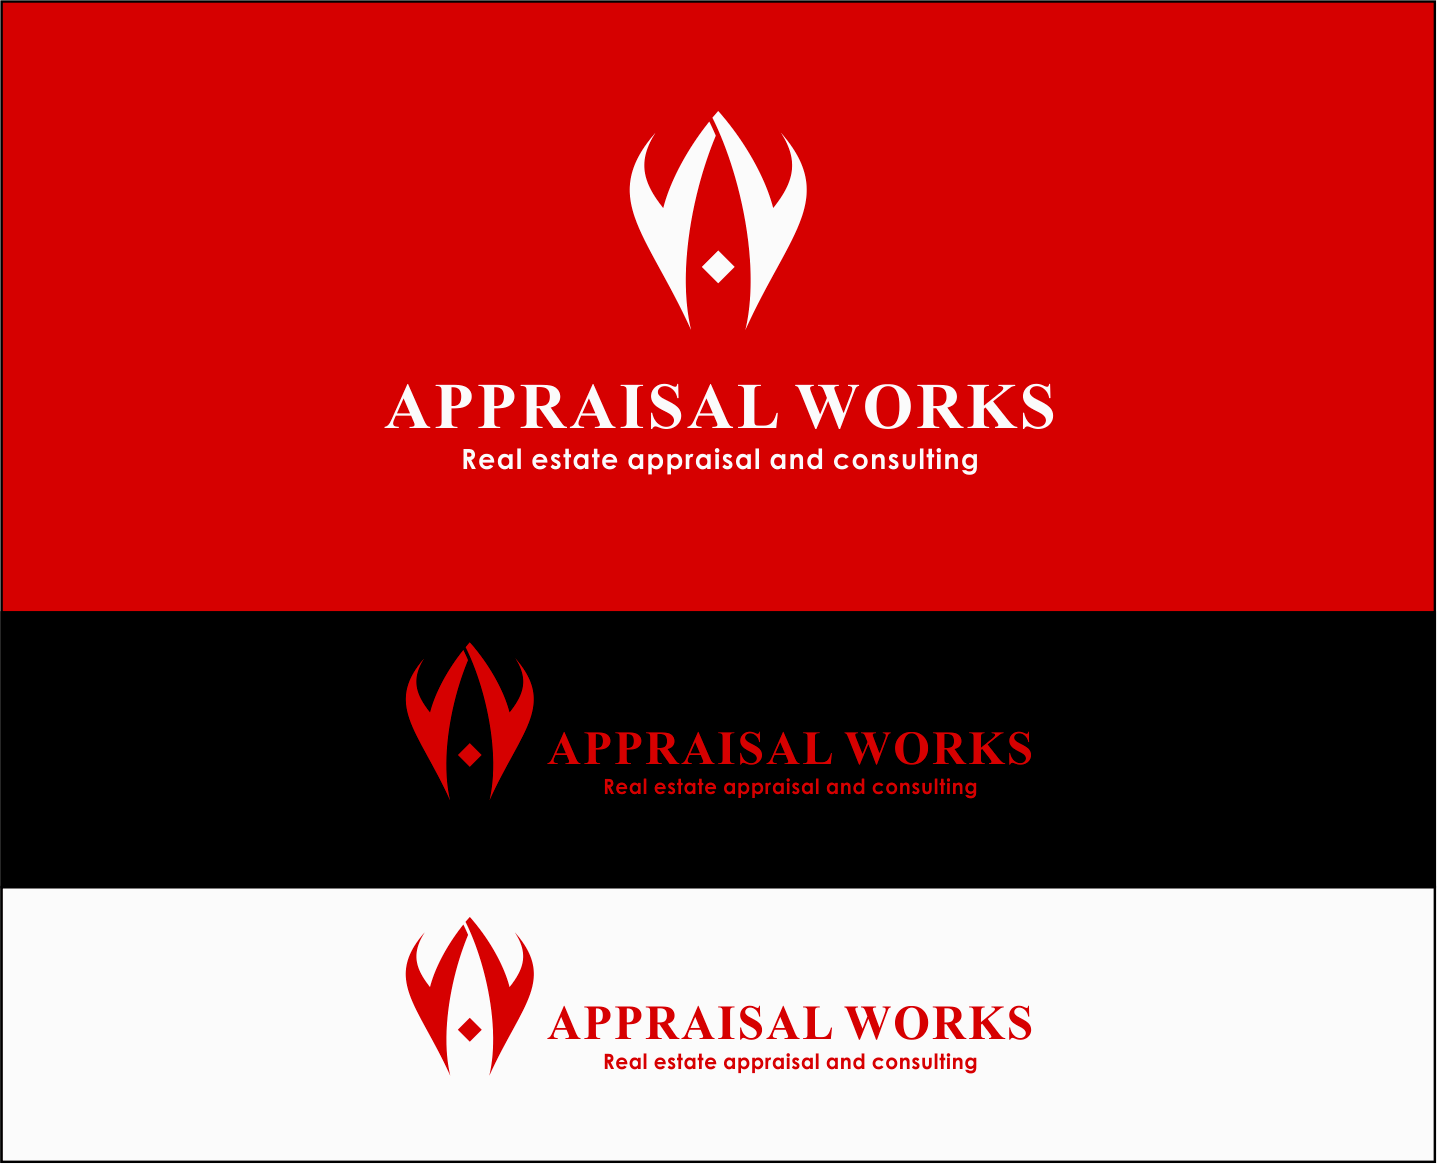 Logo Design by Armada Jamaluddin - Entry No. 131 in the Logo Design Contest Appraisal Works Logo Design.